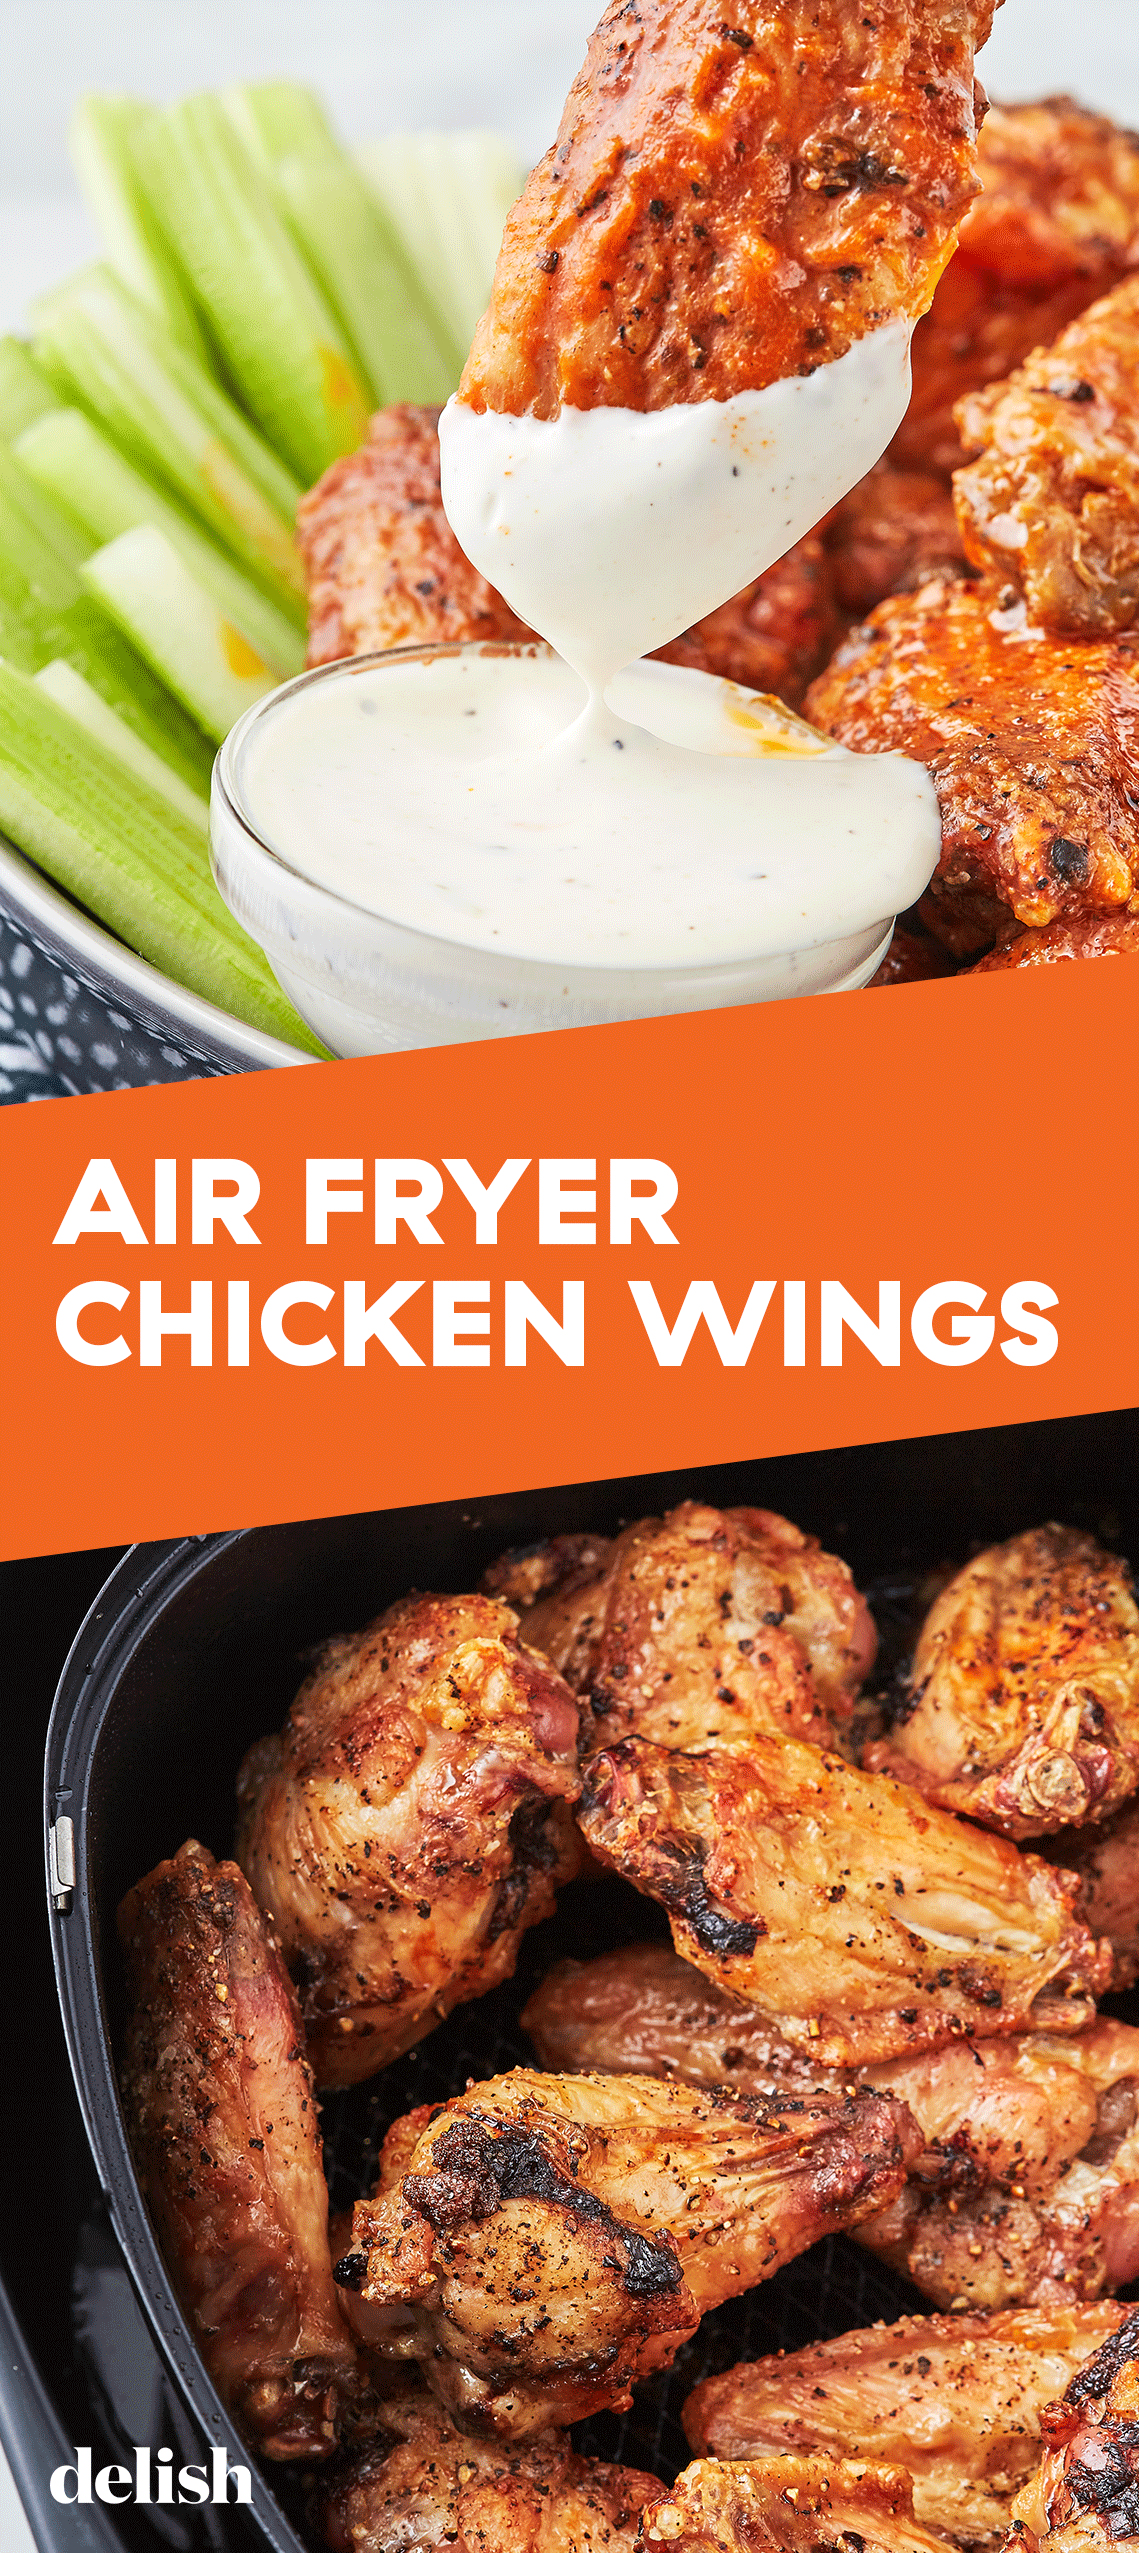 Air Fryer Chicken Wings images